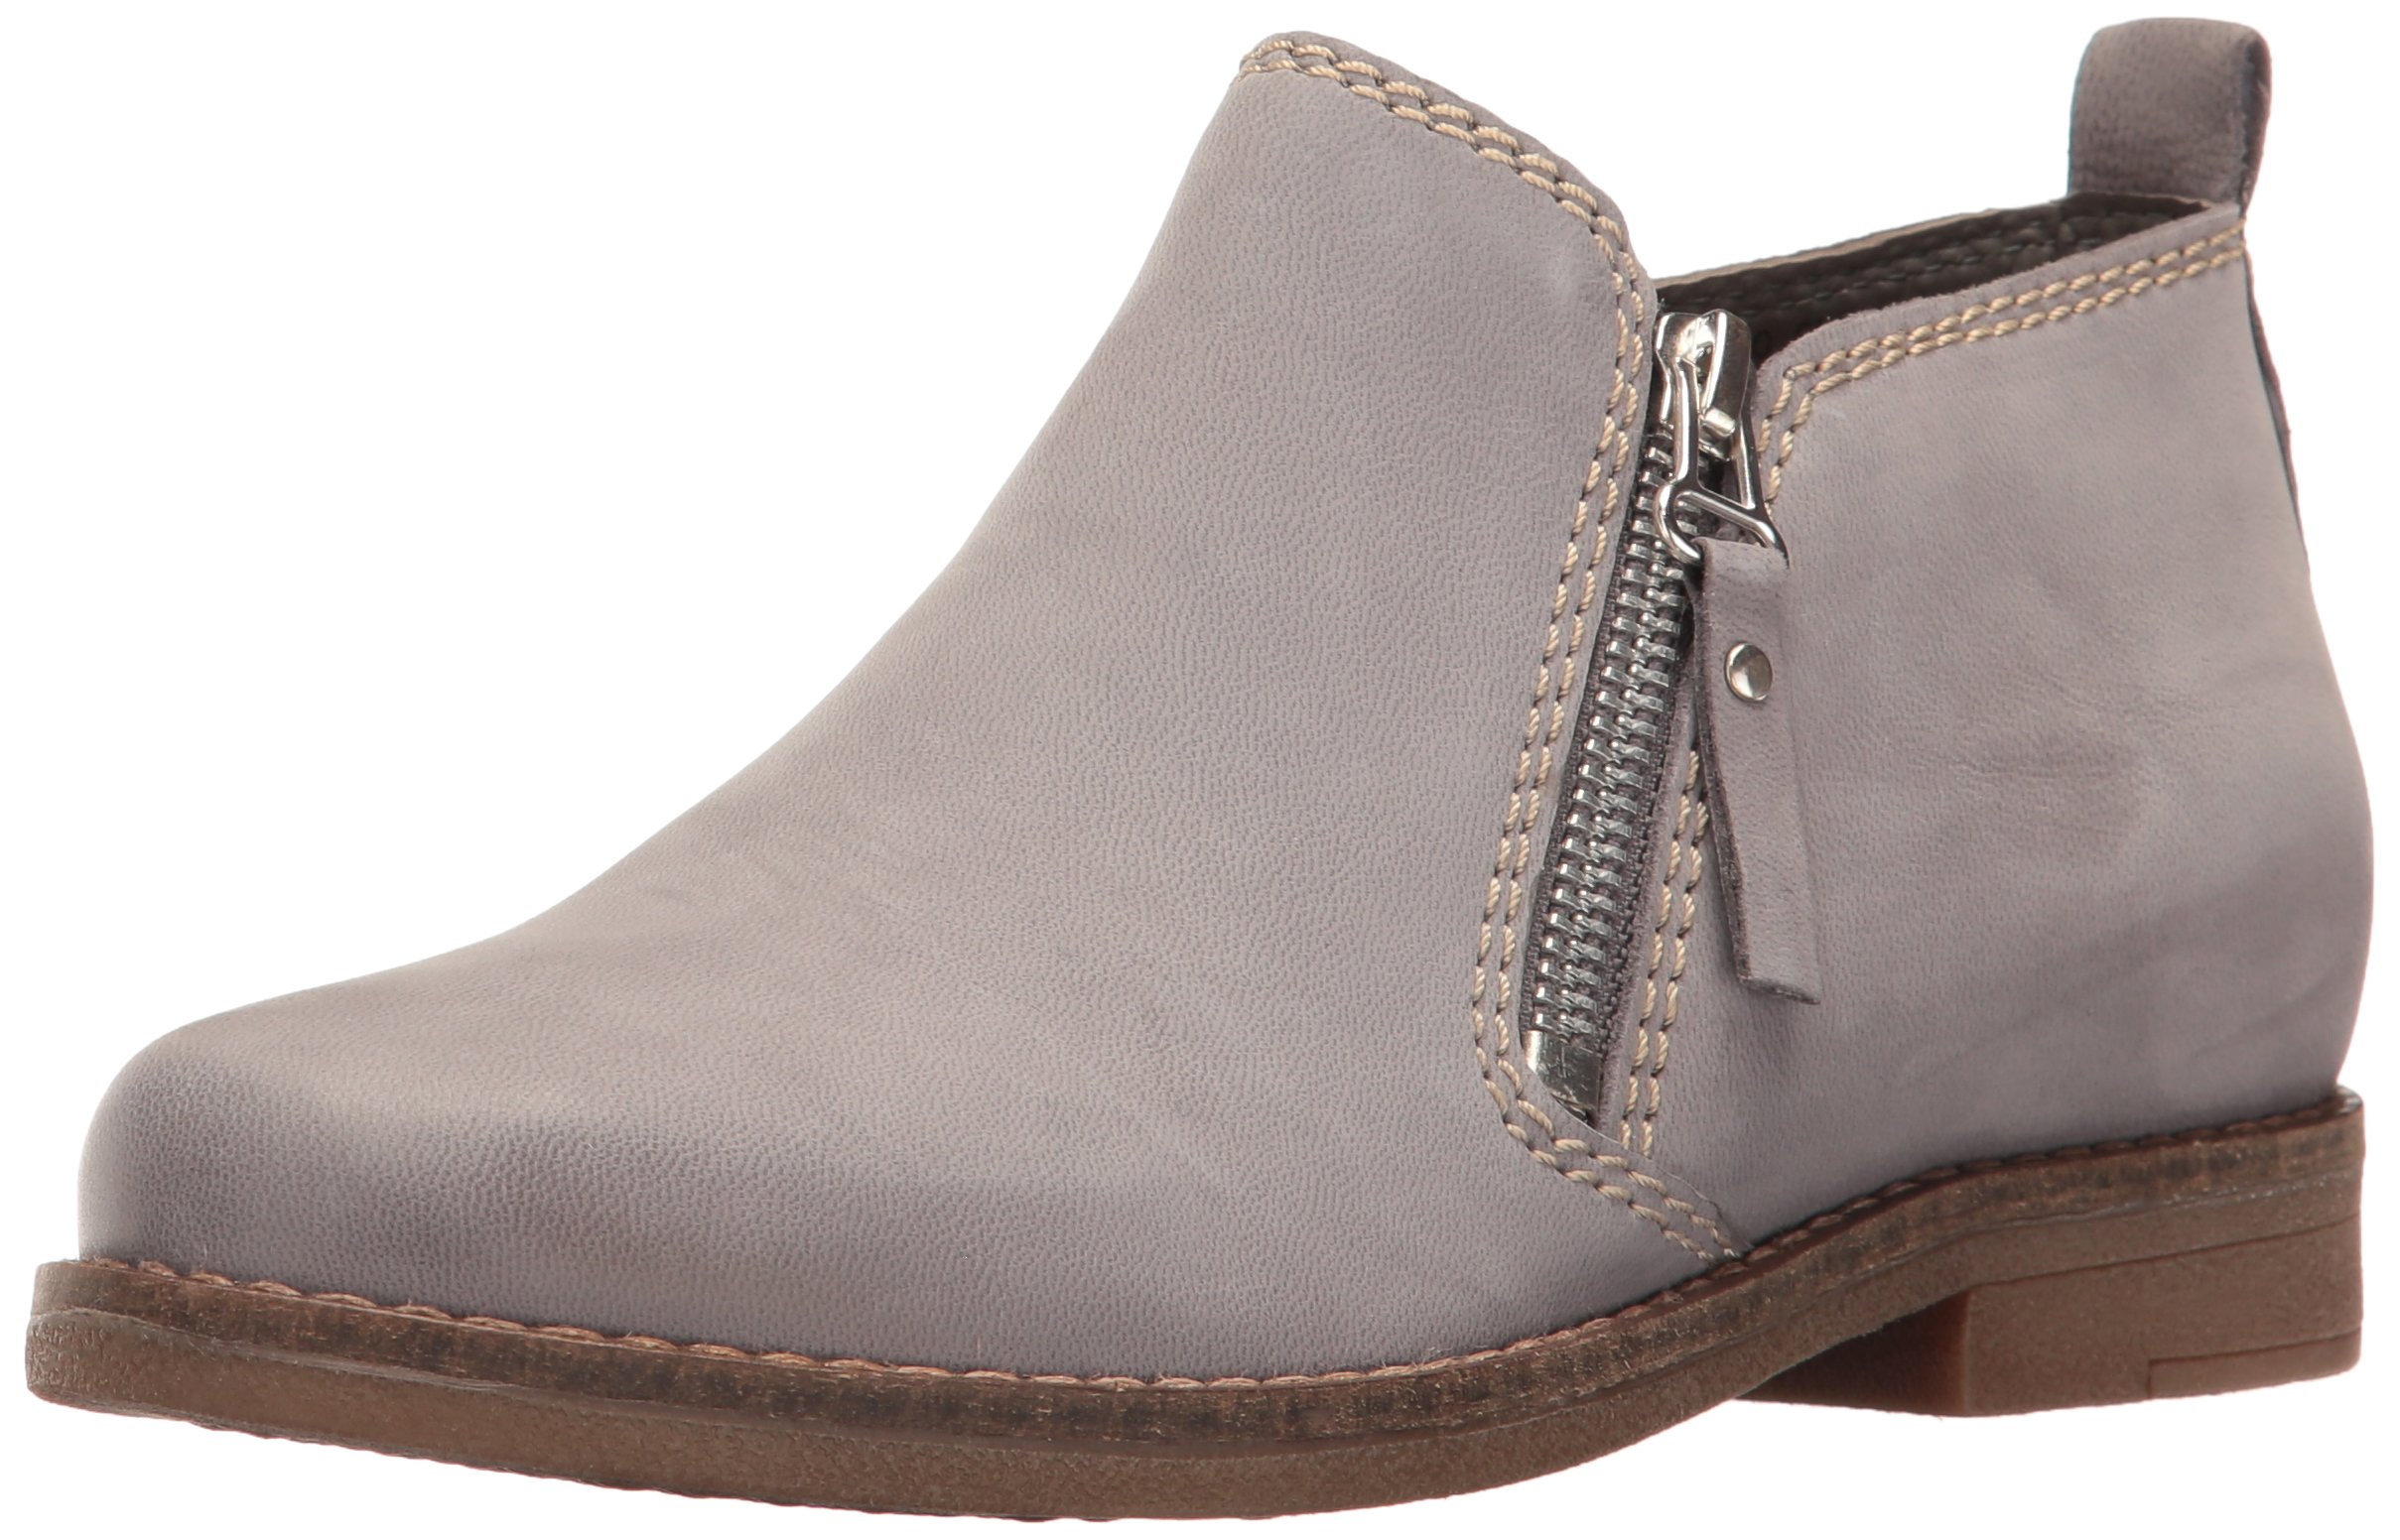 Hush Puppies Women's Mazin Cayto Flat, Frost Gray Nubuck, 11 W US by Hush Puppies